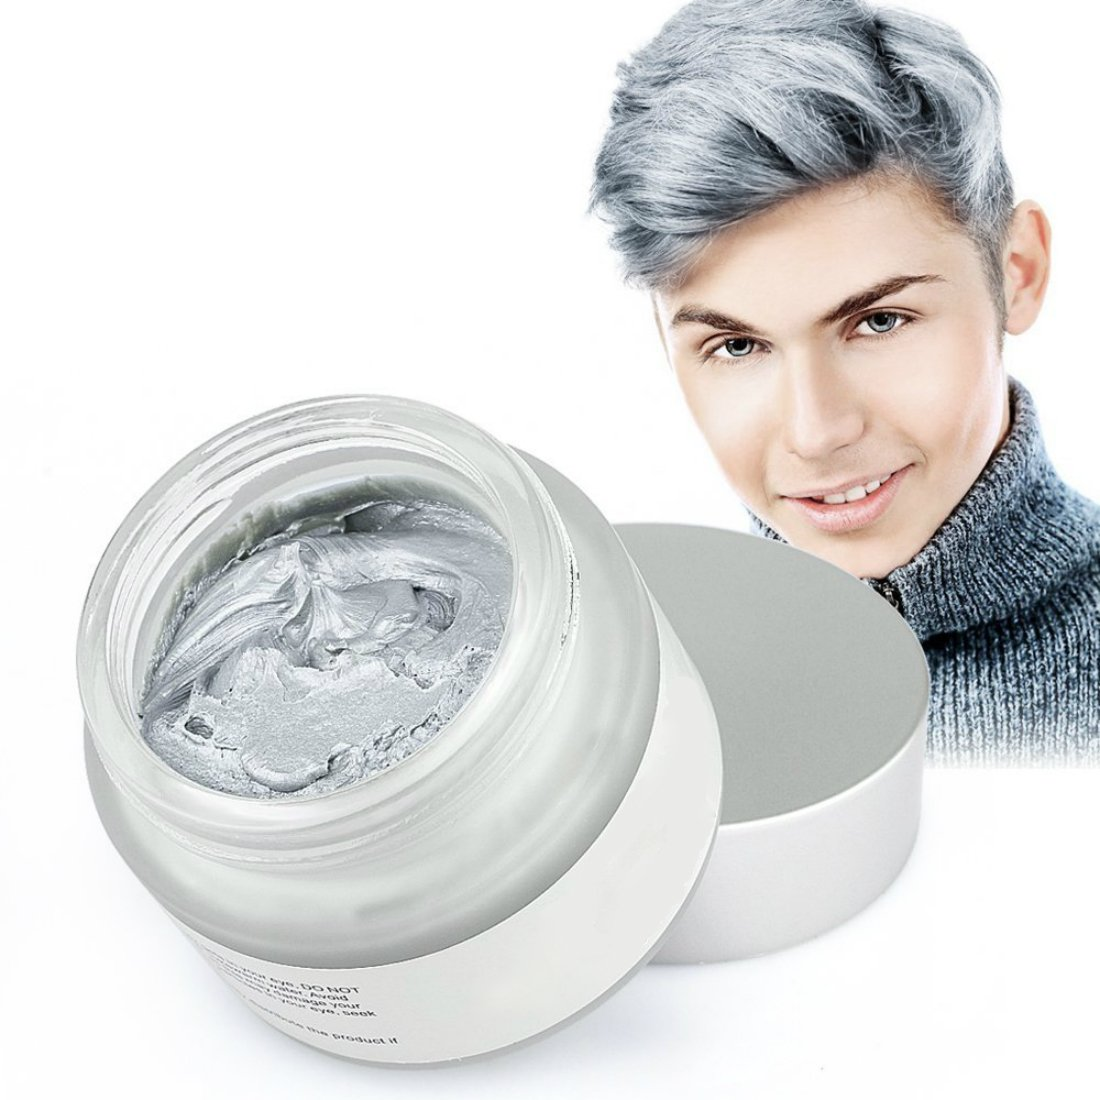 Mofajang Hair Wax Dye Styling Cream Mud, Natural Hairstyle Color Pomade, Washable Temporary, Gray by MOFAJANG (Image #1)